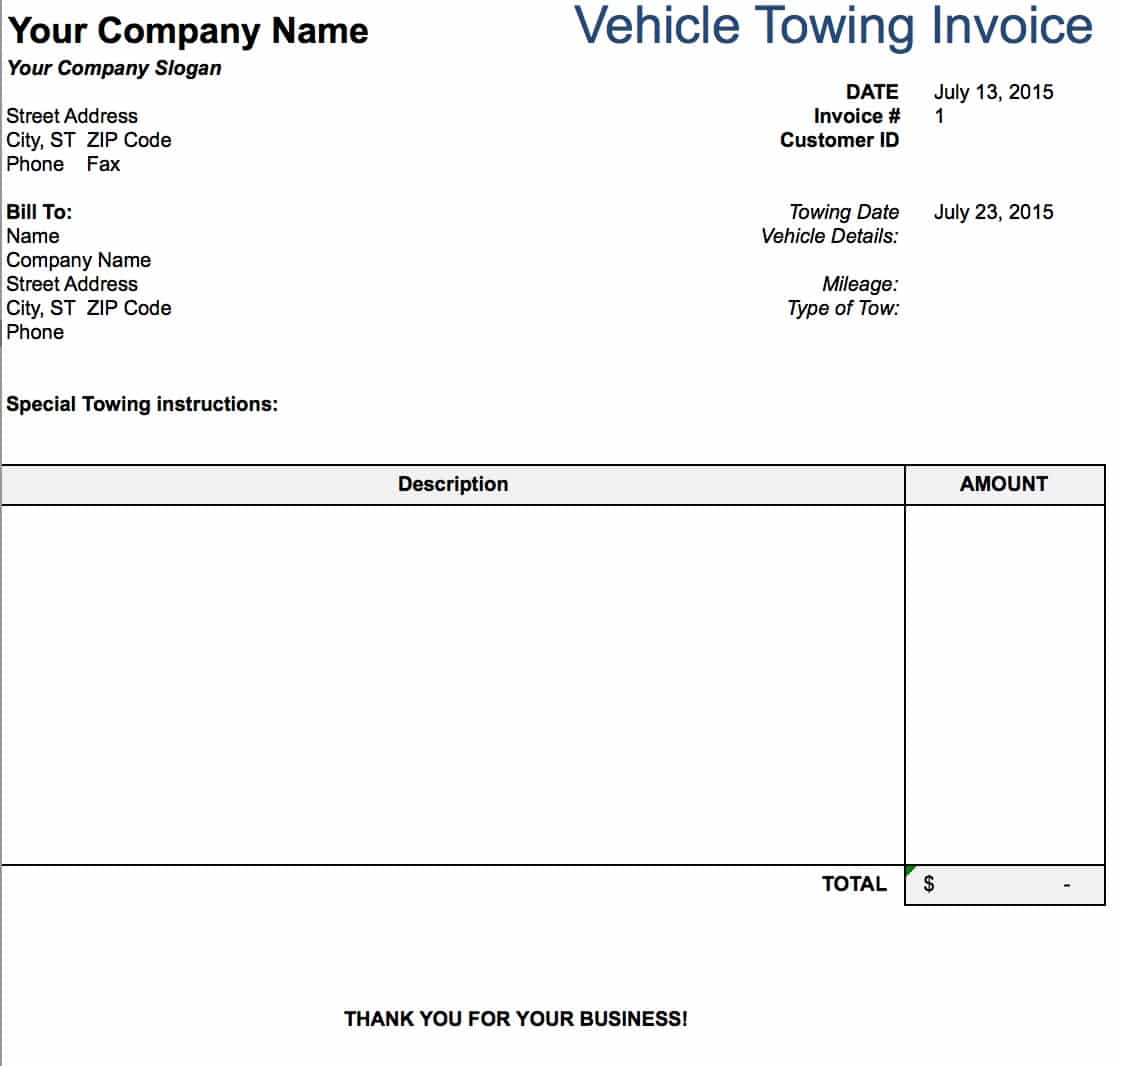 Free Tow Service Invoice Template Excel PDF Word Doc - Free sample invoice for service business